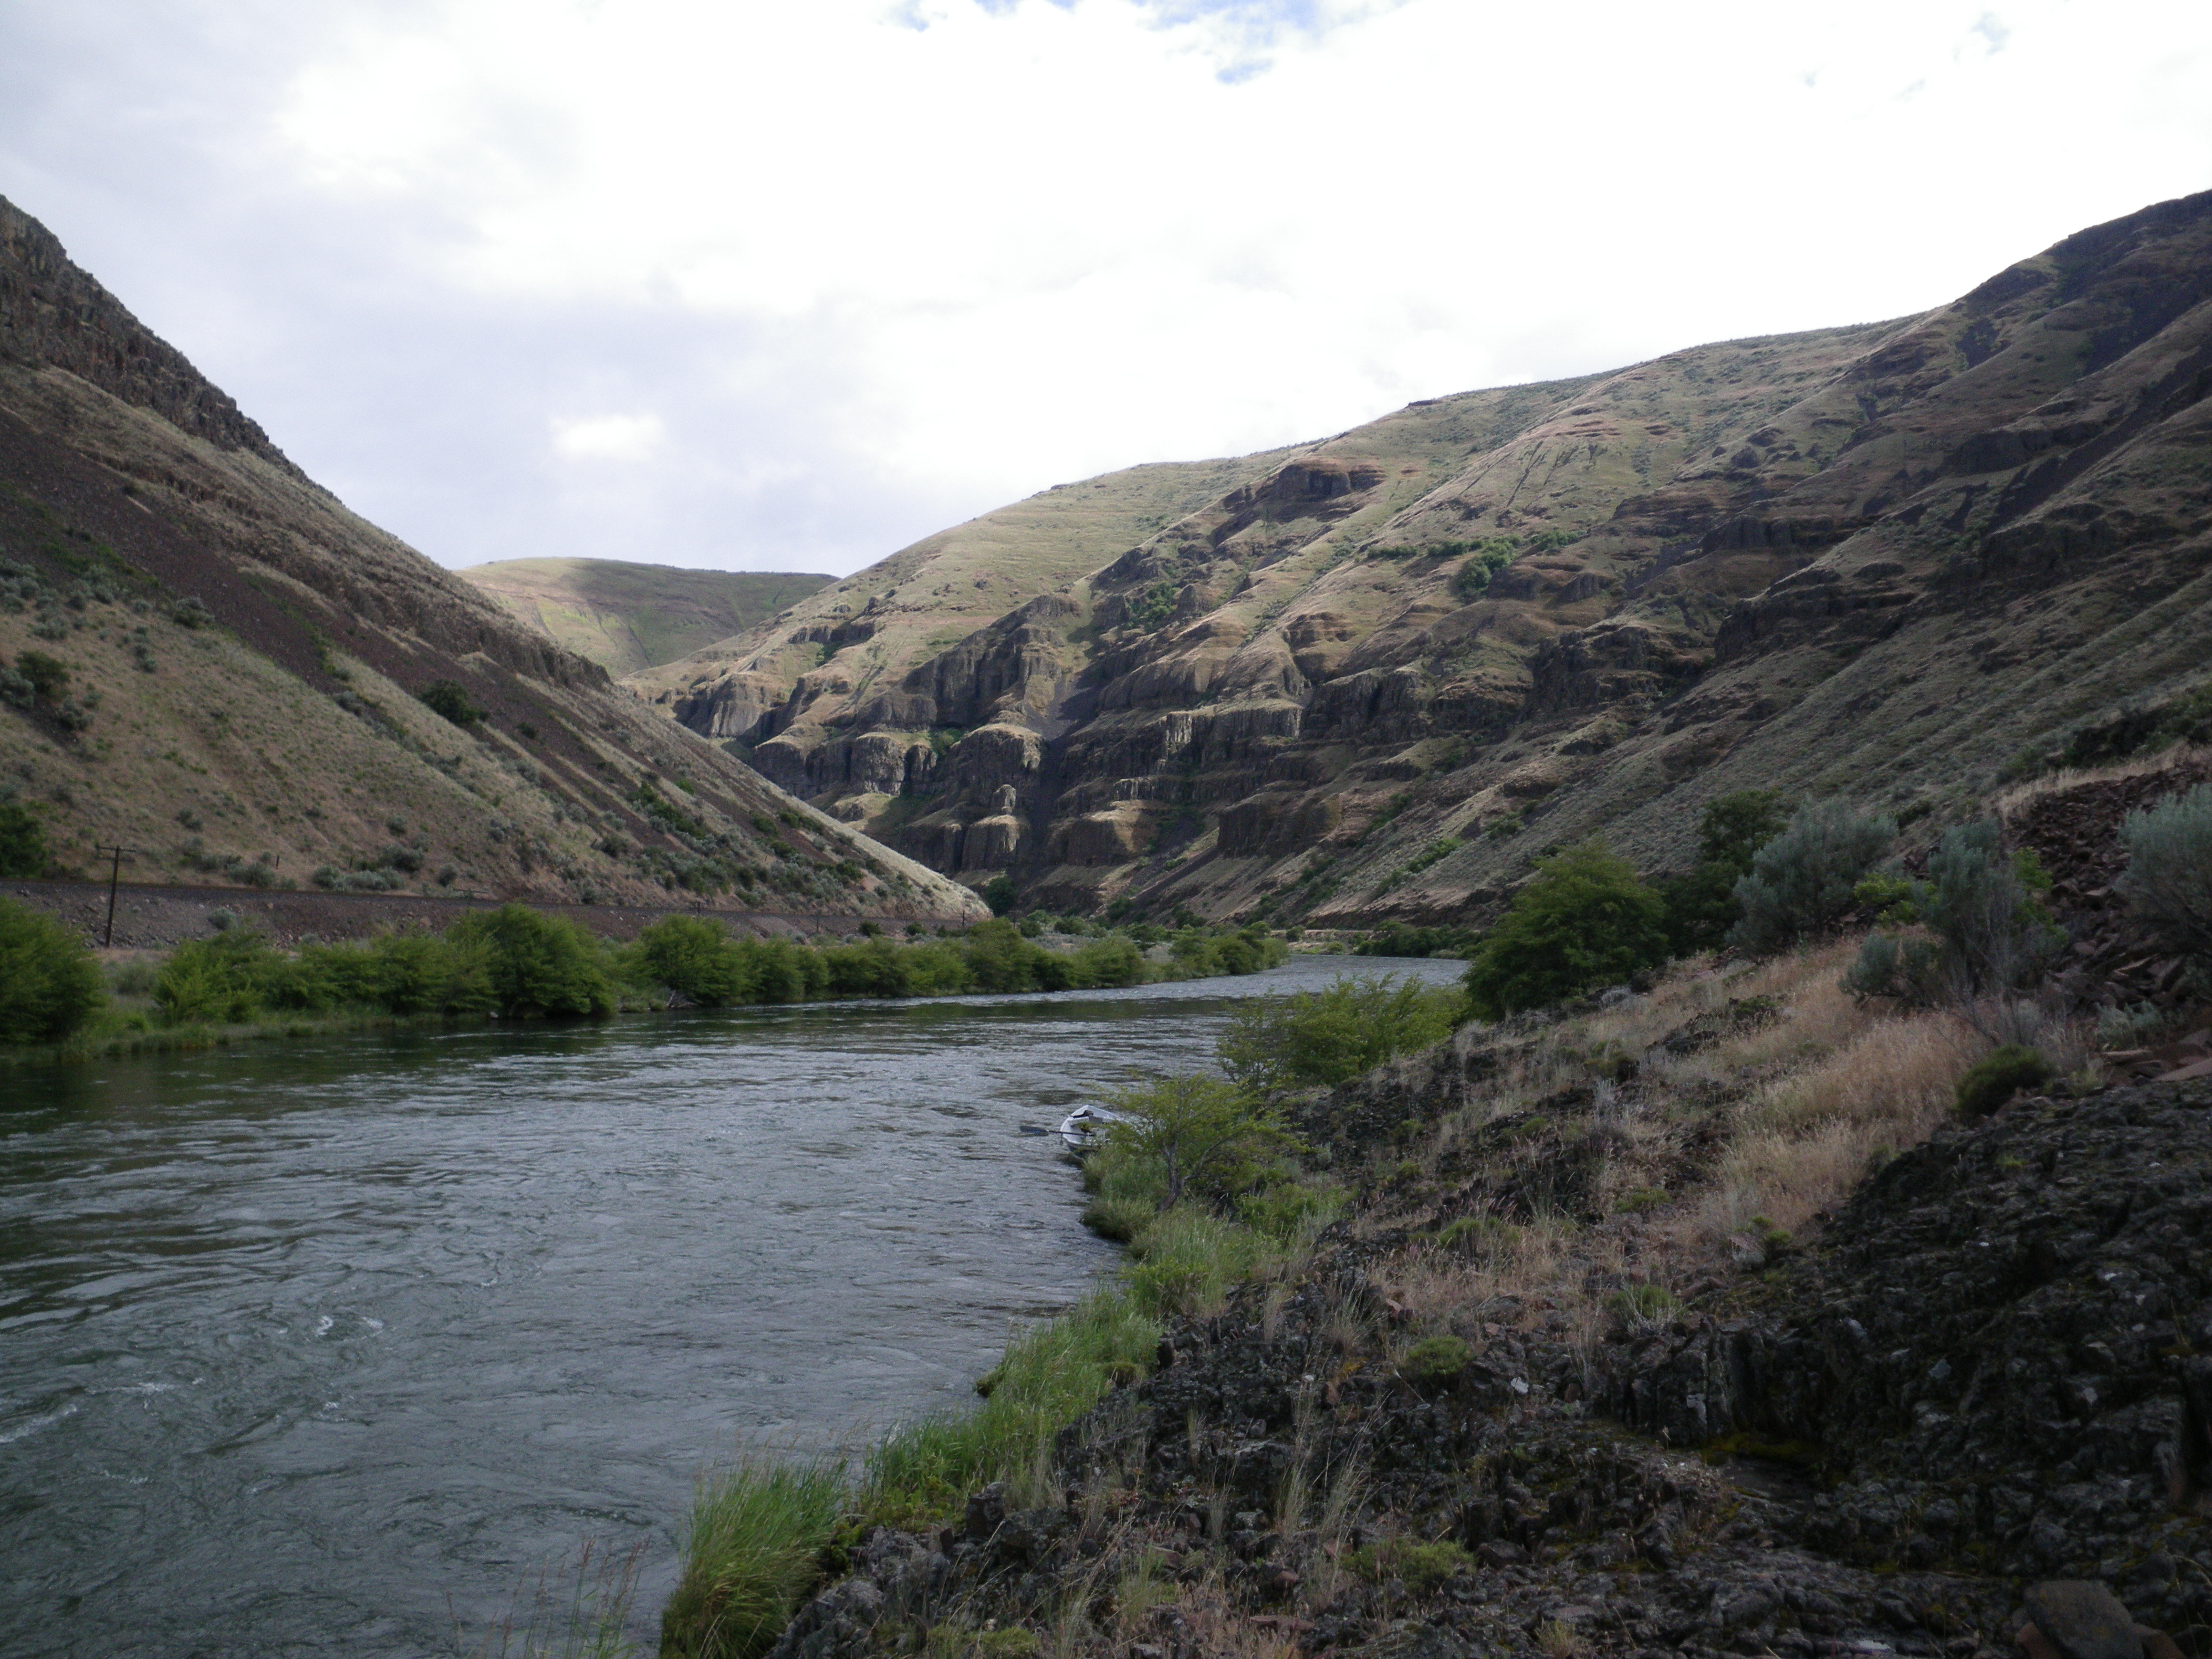 The Lure of the Deschutes